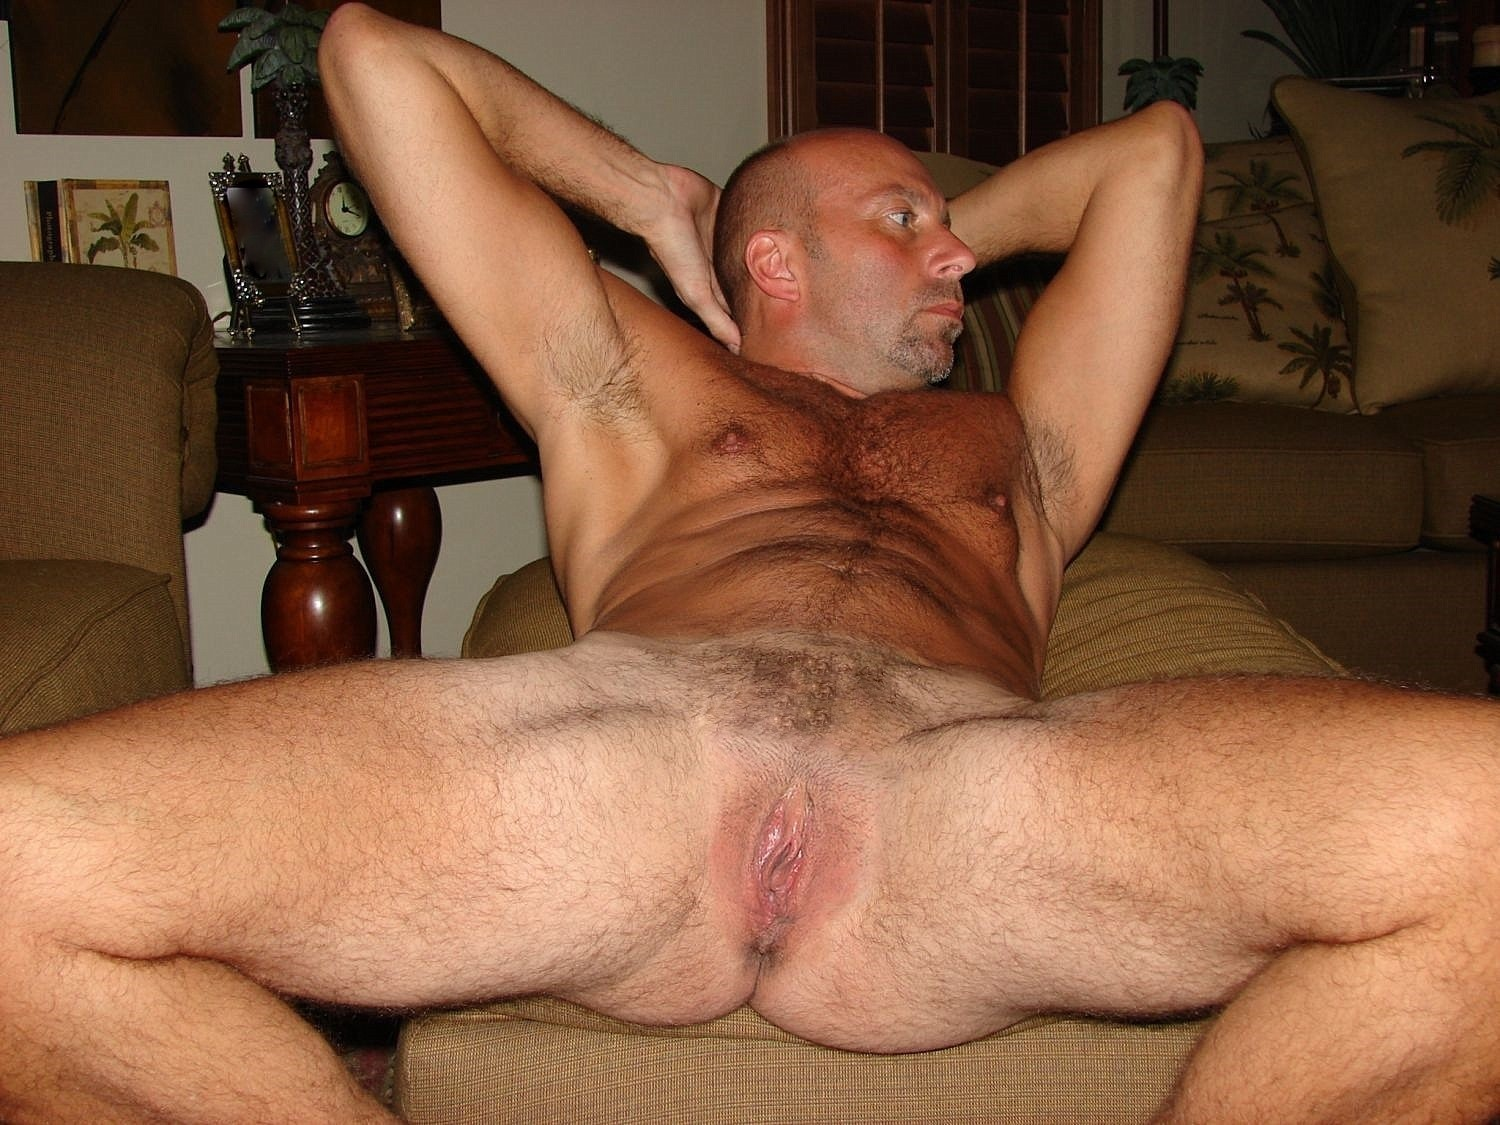 pics-of-naked-men-with-vaginas-free-mmf-videod